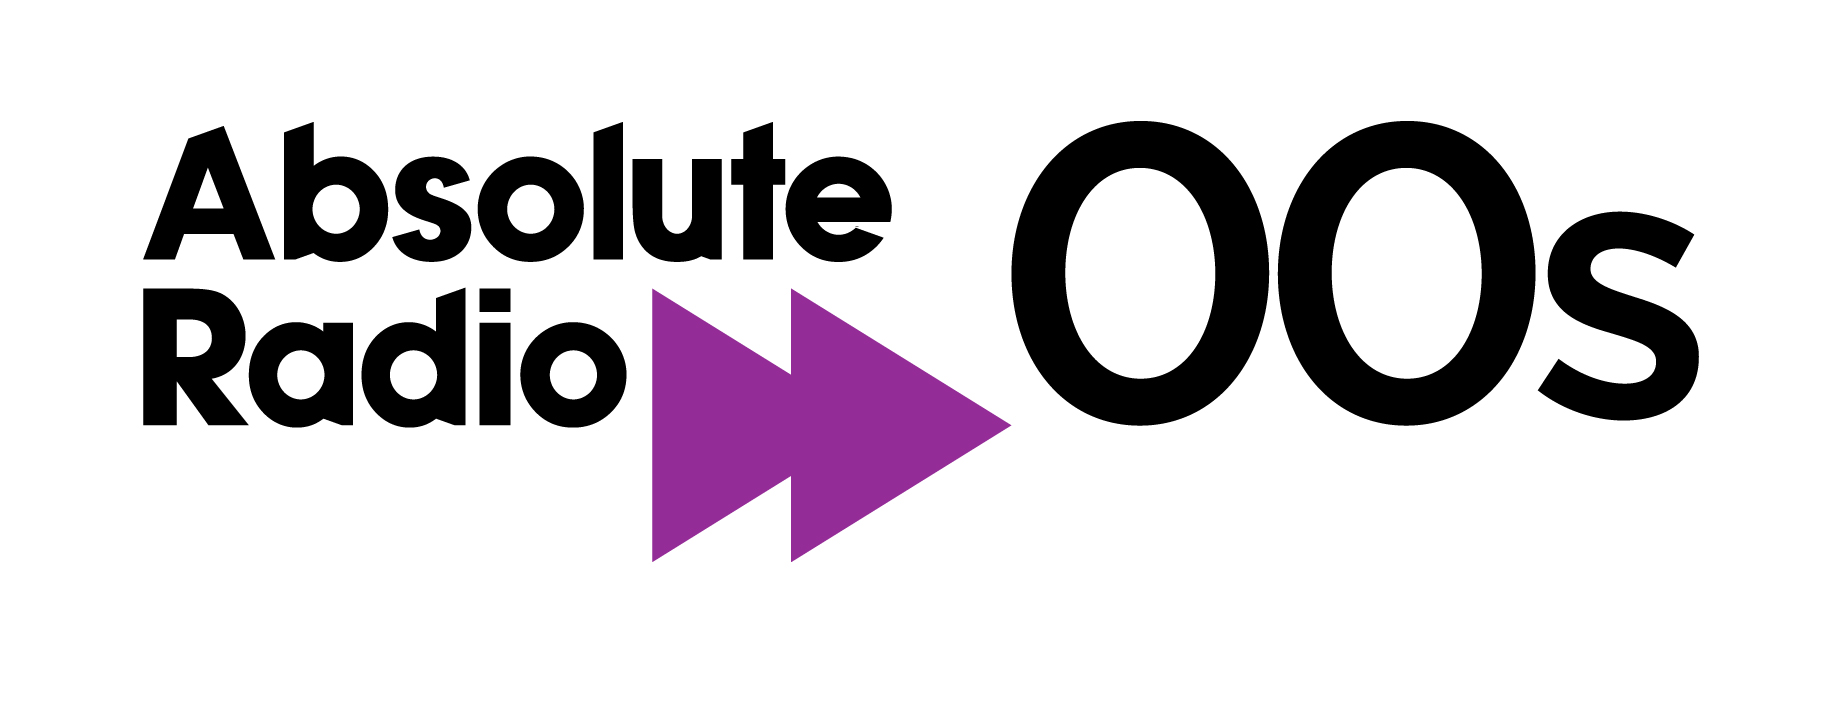 Absolute Radio 00s logo